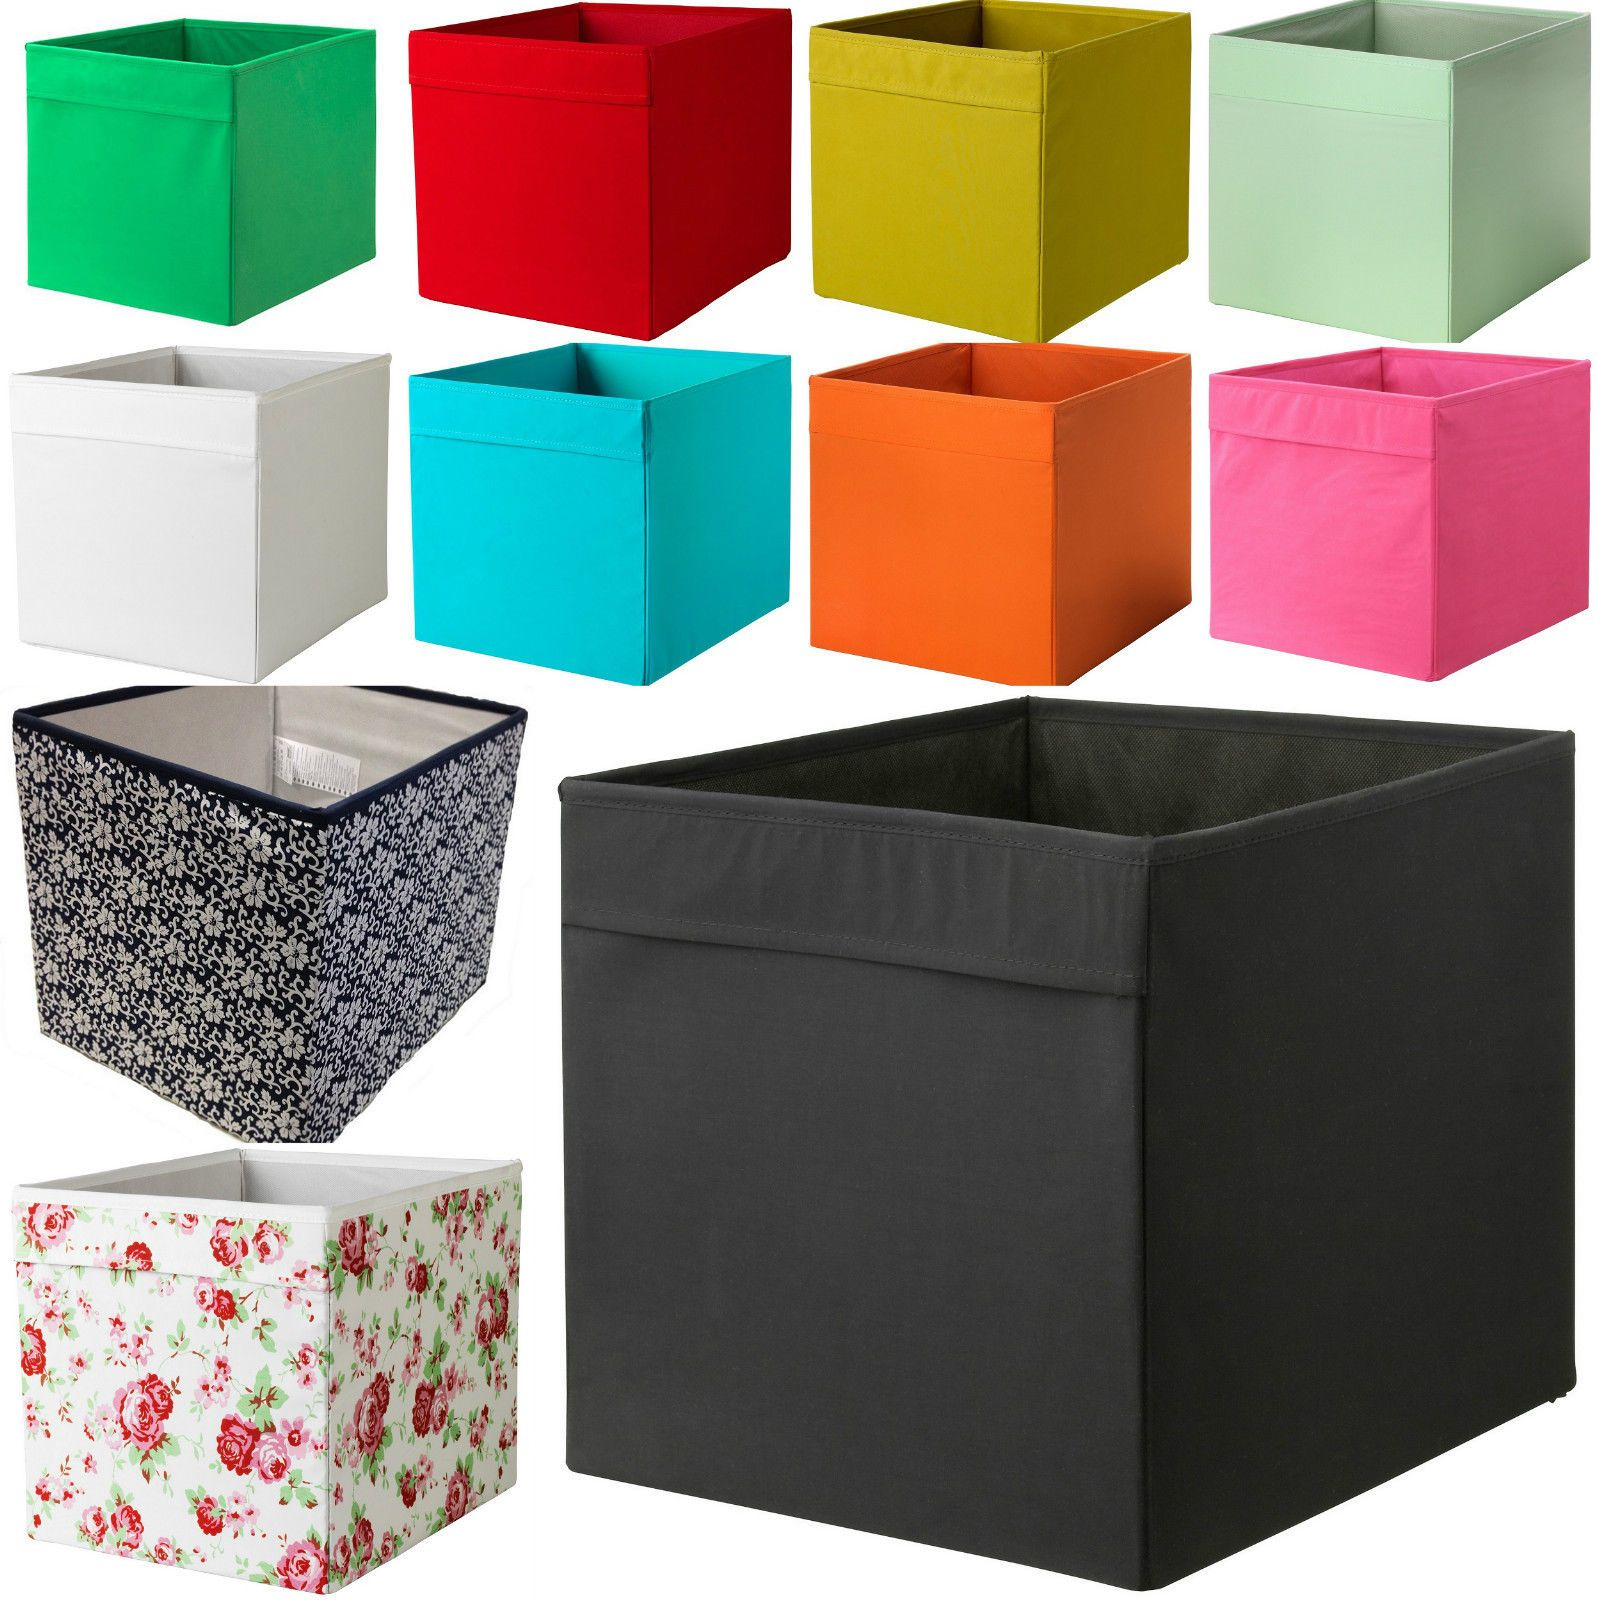 Details about New Ikea DRONA Fabric Storage Box Basket For